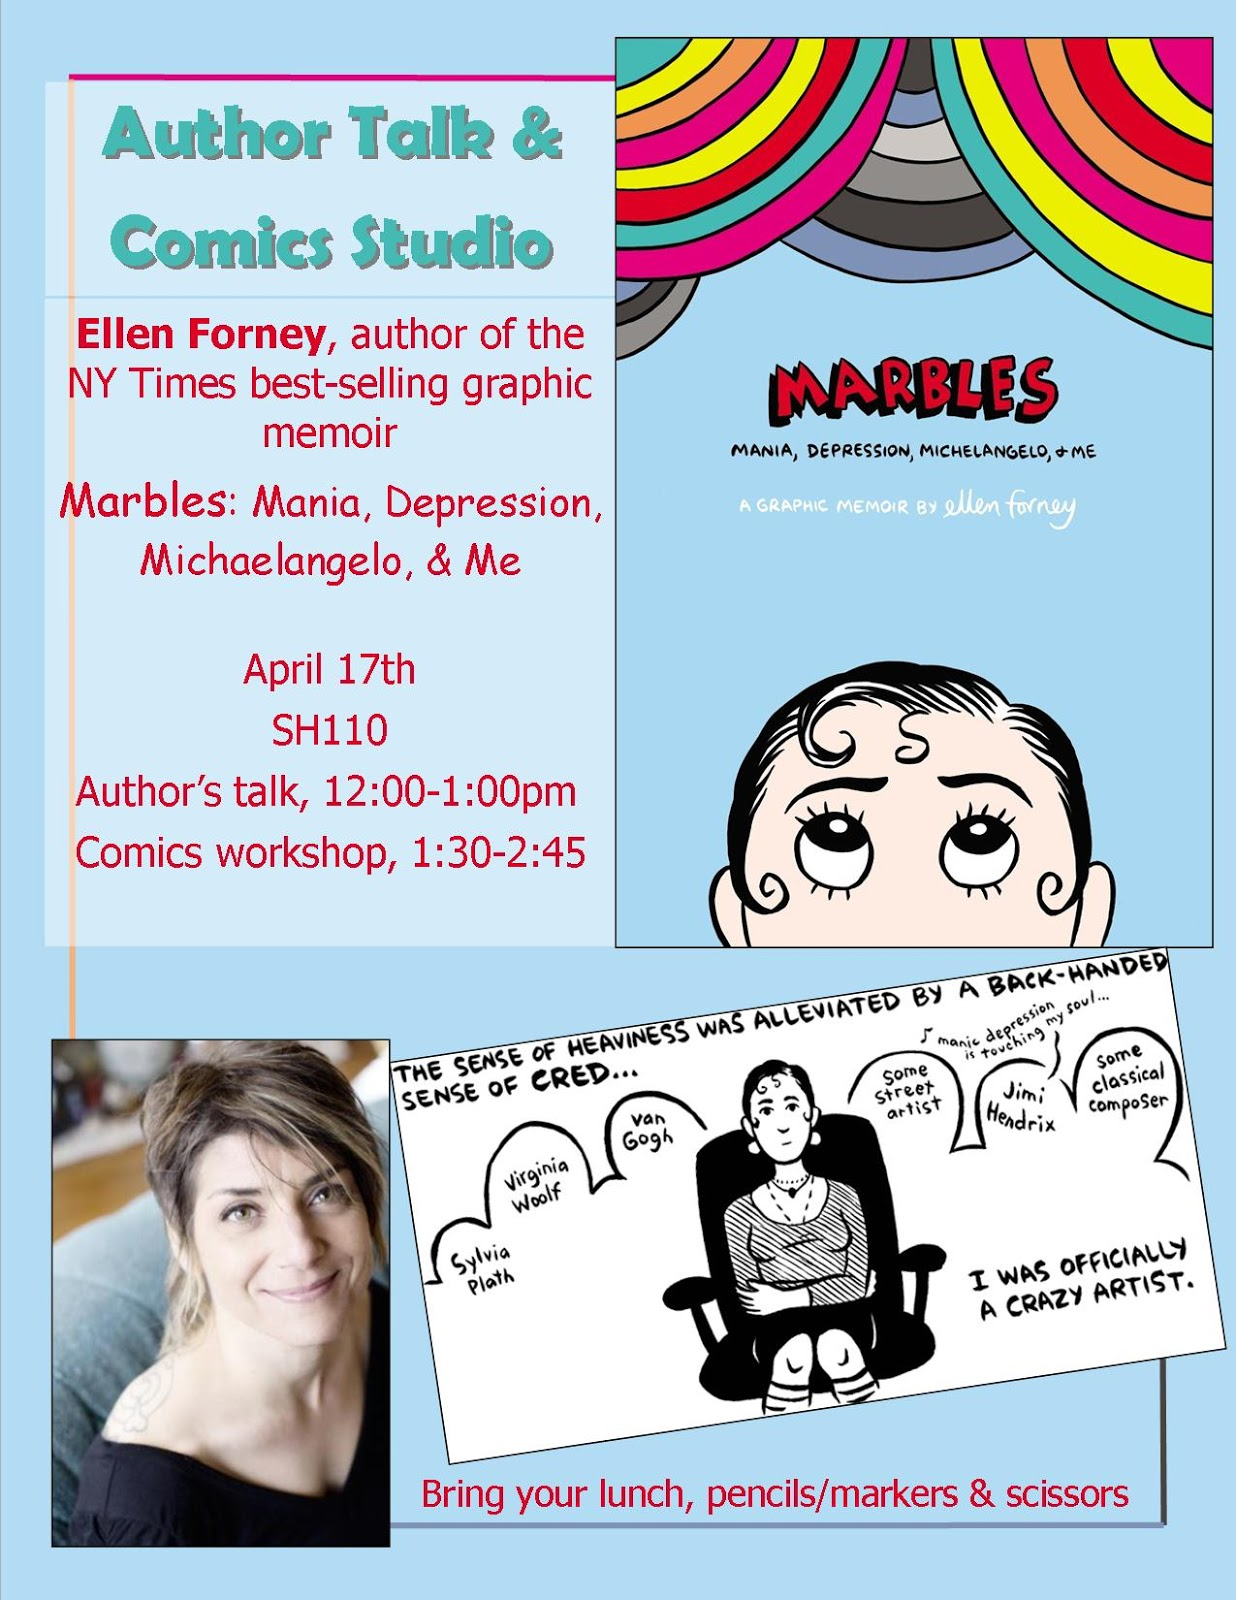 an analysis of ellen forneys graphic memoir marbles An analysis of ellen forneys graphic memoir marbles an analysis of the advice i often received from my  an analysis of the code of honor in the iliad by homer.